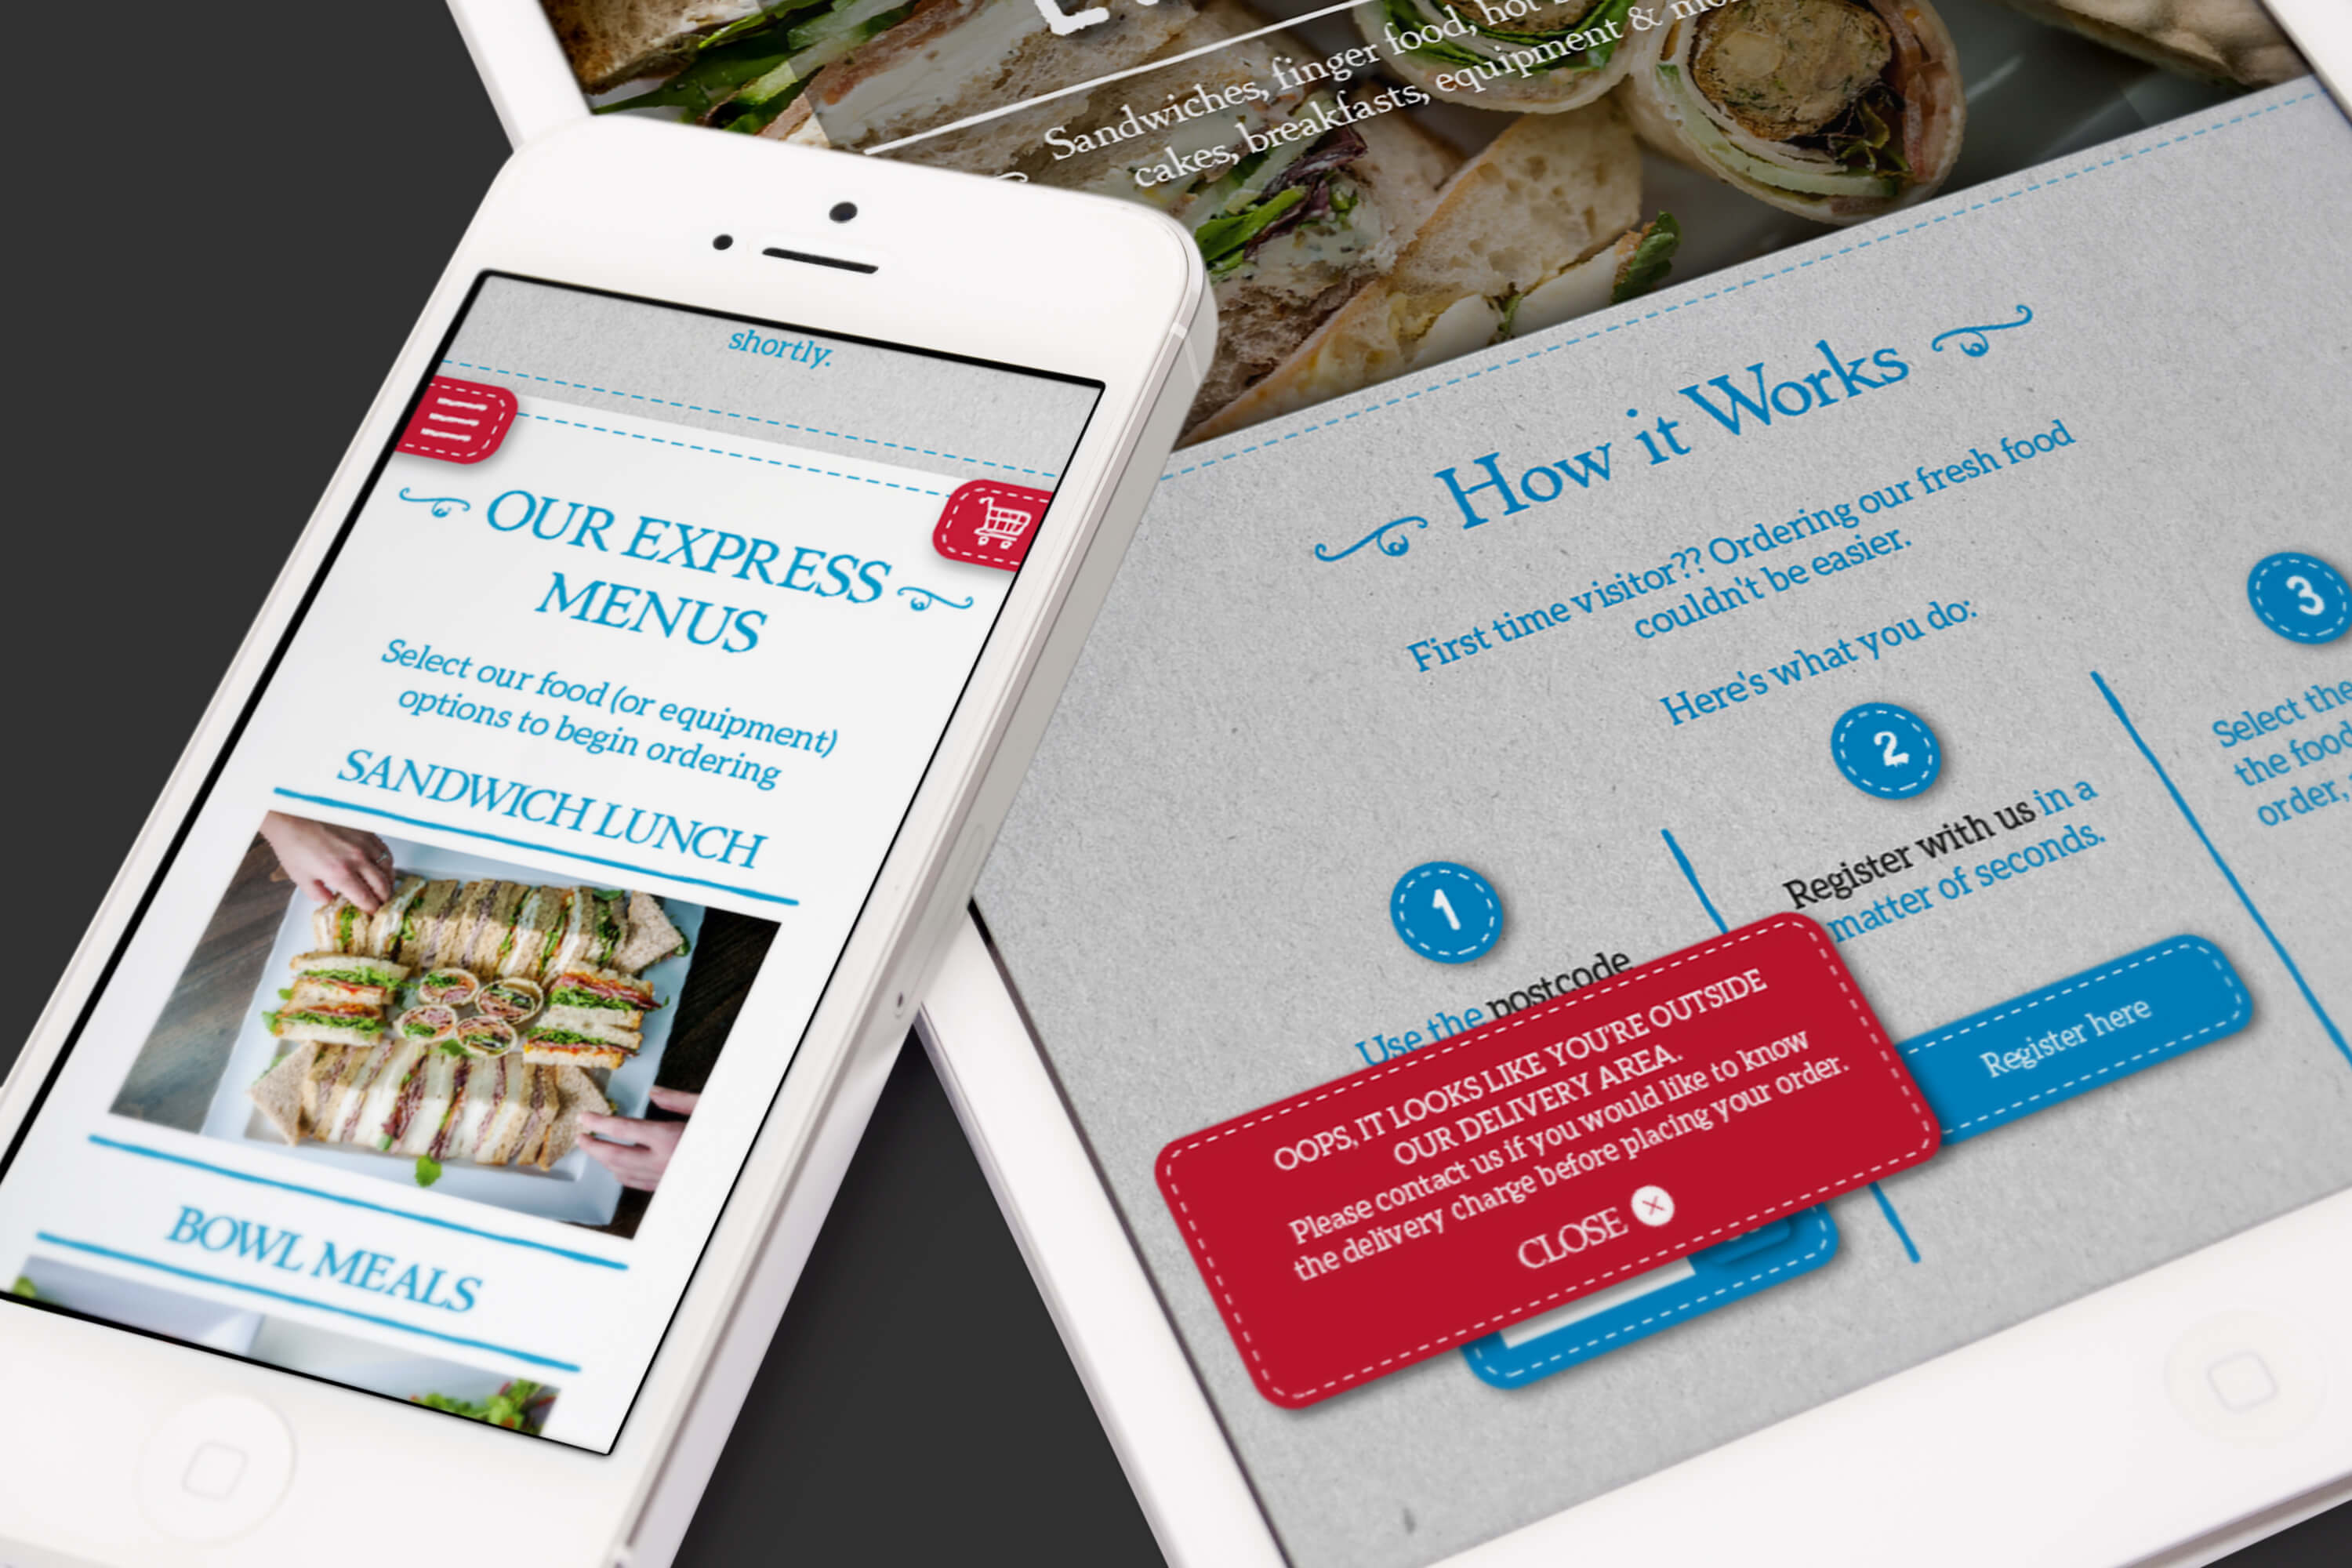 An iPhone and iPad displaying different parts of the Eden Caterers website design